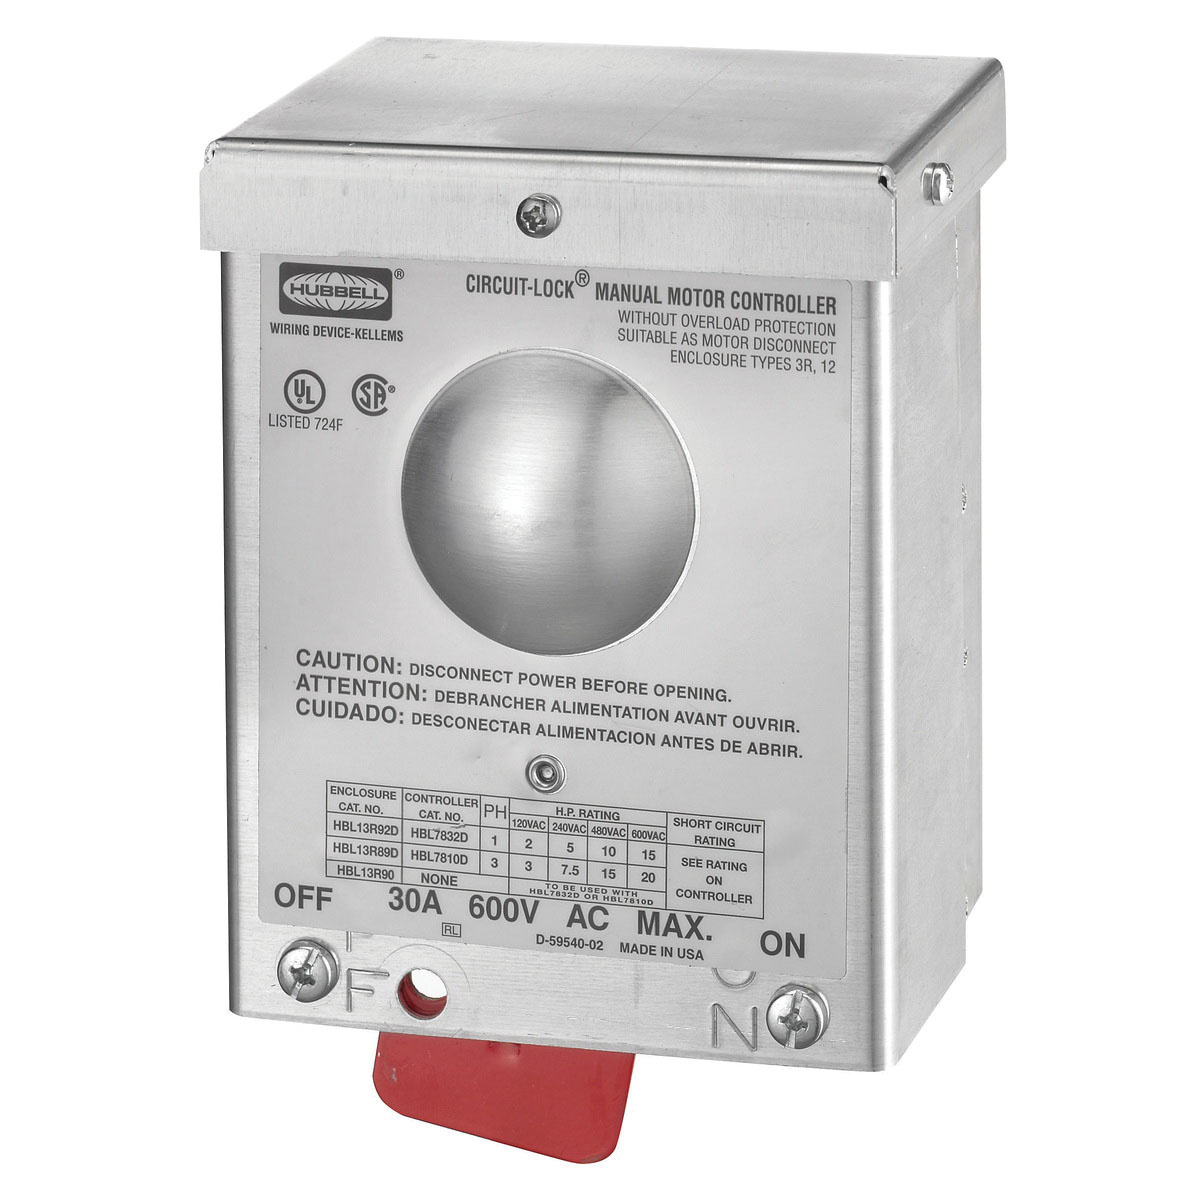 Hubbell Wiring Hbl13r89d 3 Pole 3 Phase Standard Duty